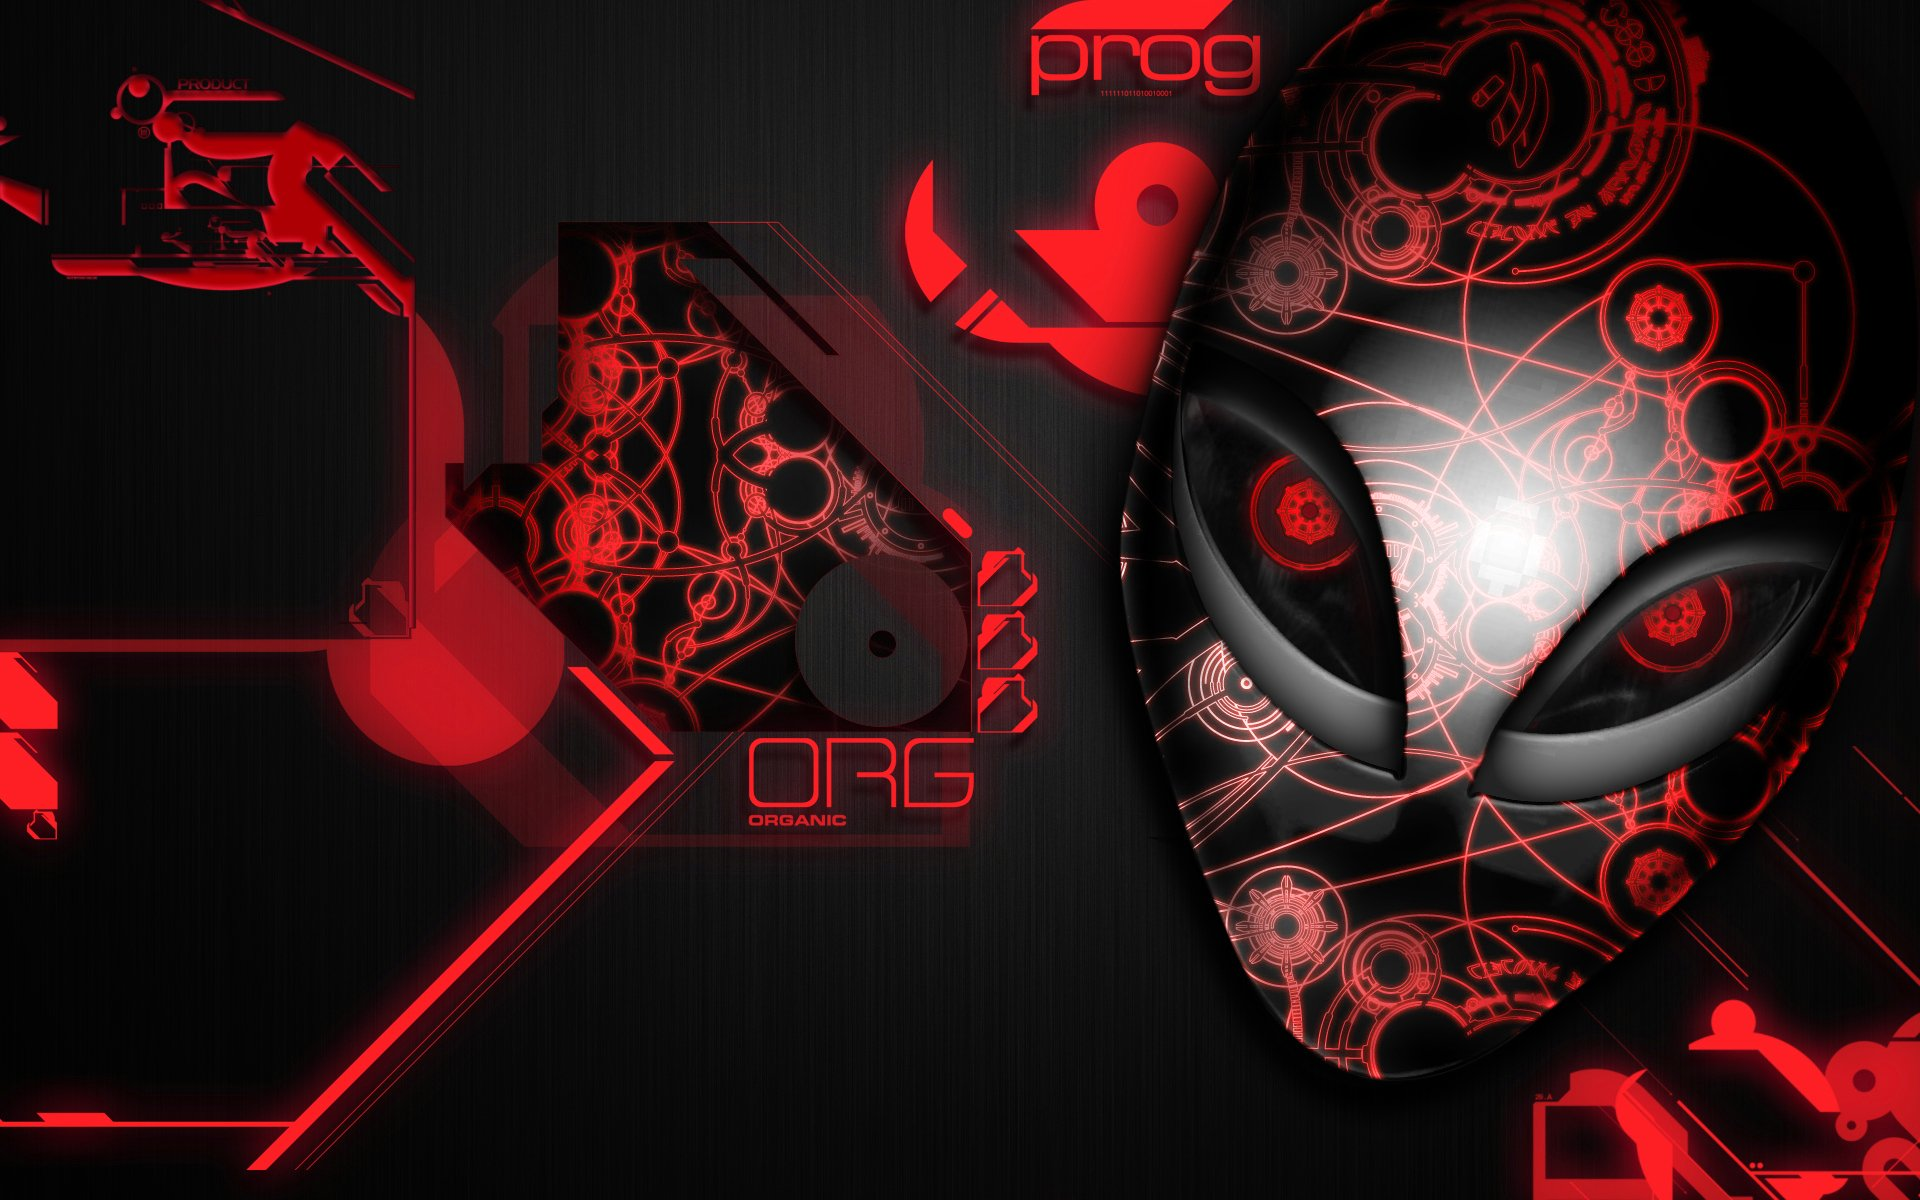 Comments to HD Alienware Wallpapers 19201080 Alienware Backgrounds 1920x1200